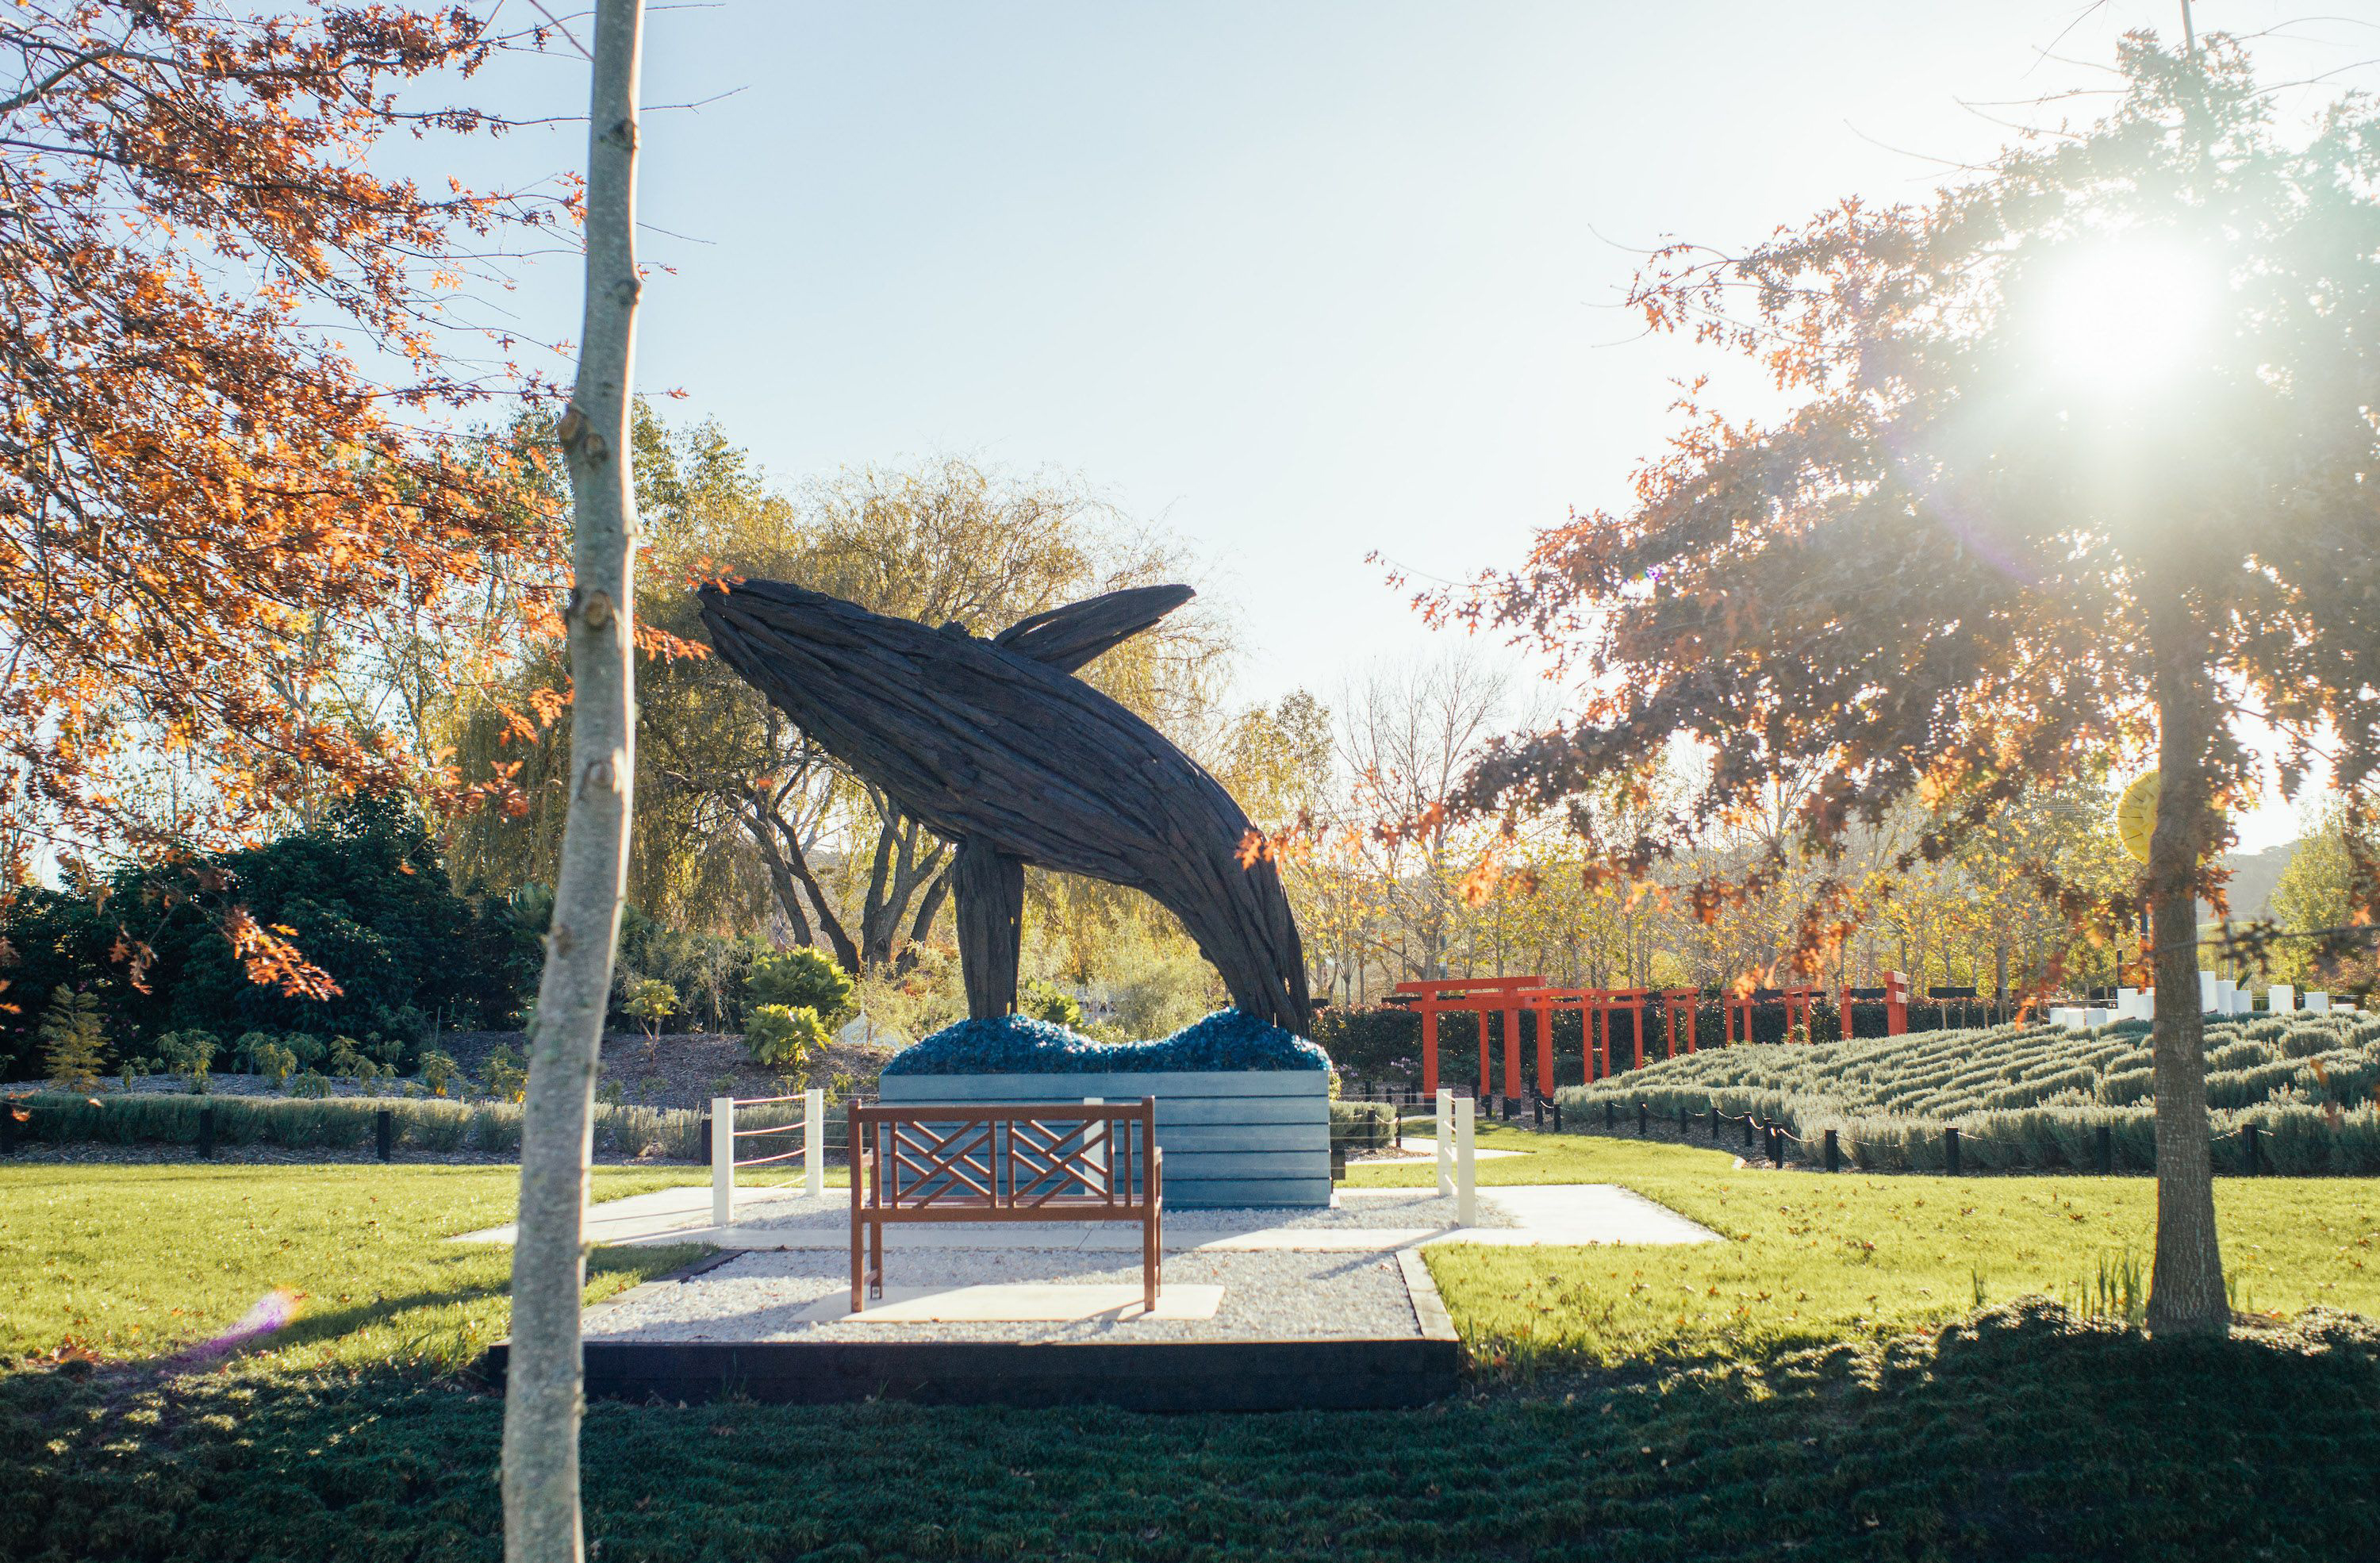 A dynamic sculpture of a whale in the outdoors